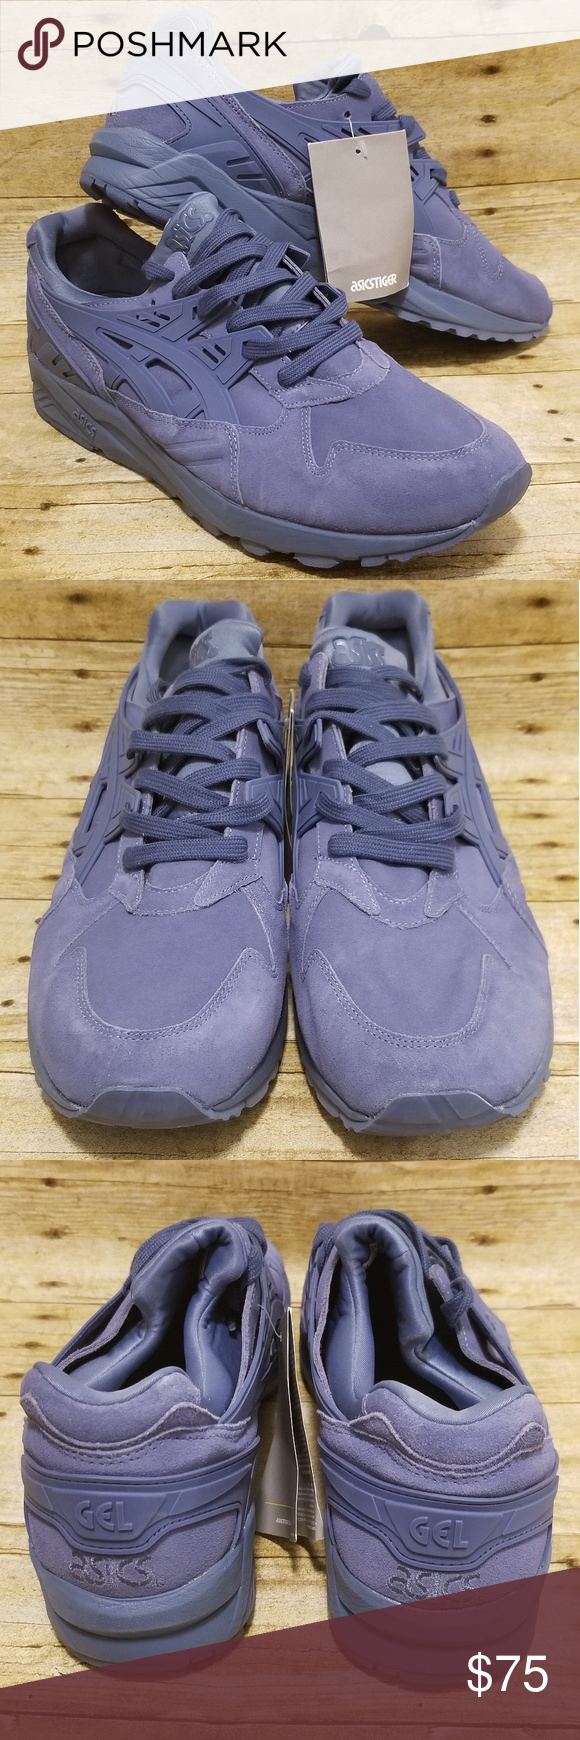 separation shoes c9868 2a05b ASICS Gel-Kayano Trainer Men Pigeon Blue Suede Asics Gel-Kayano Blue  Stylish Features   details Man-Made Material Shaft measures approximately  Low-Top